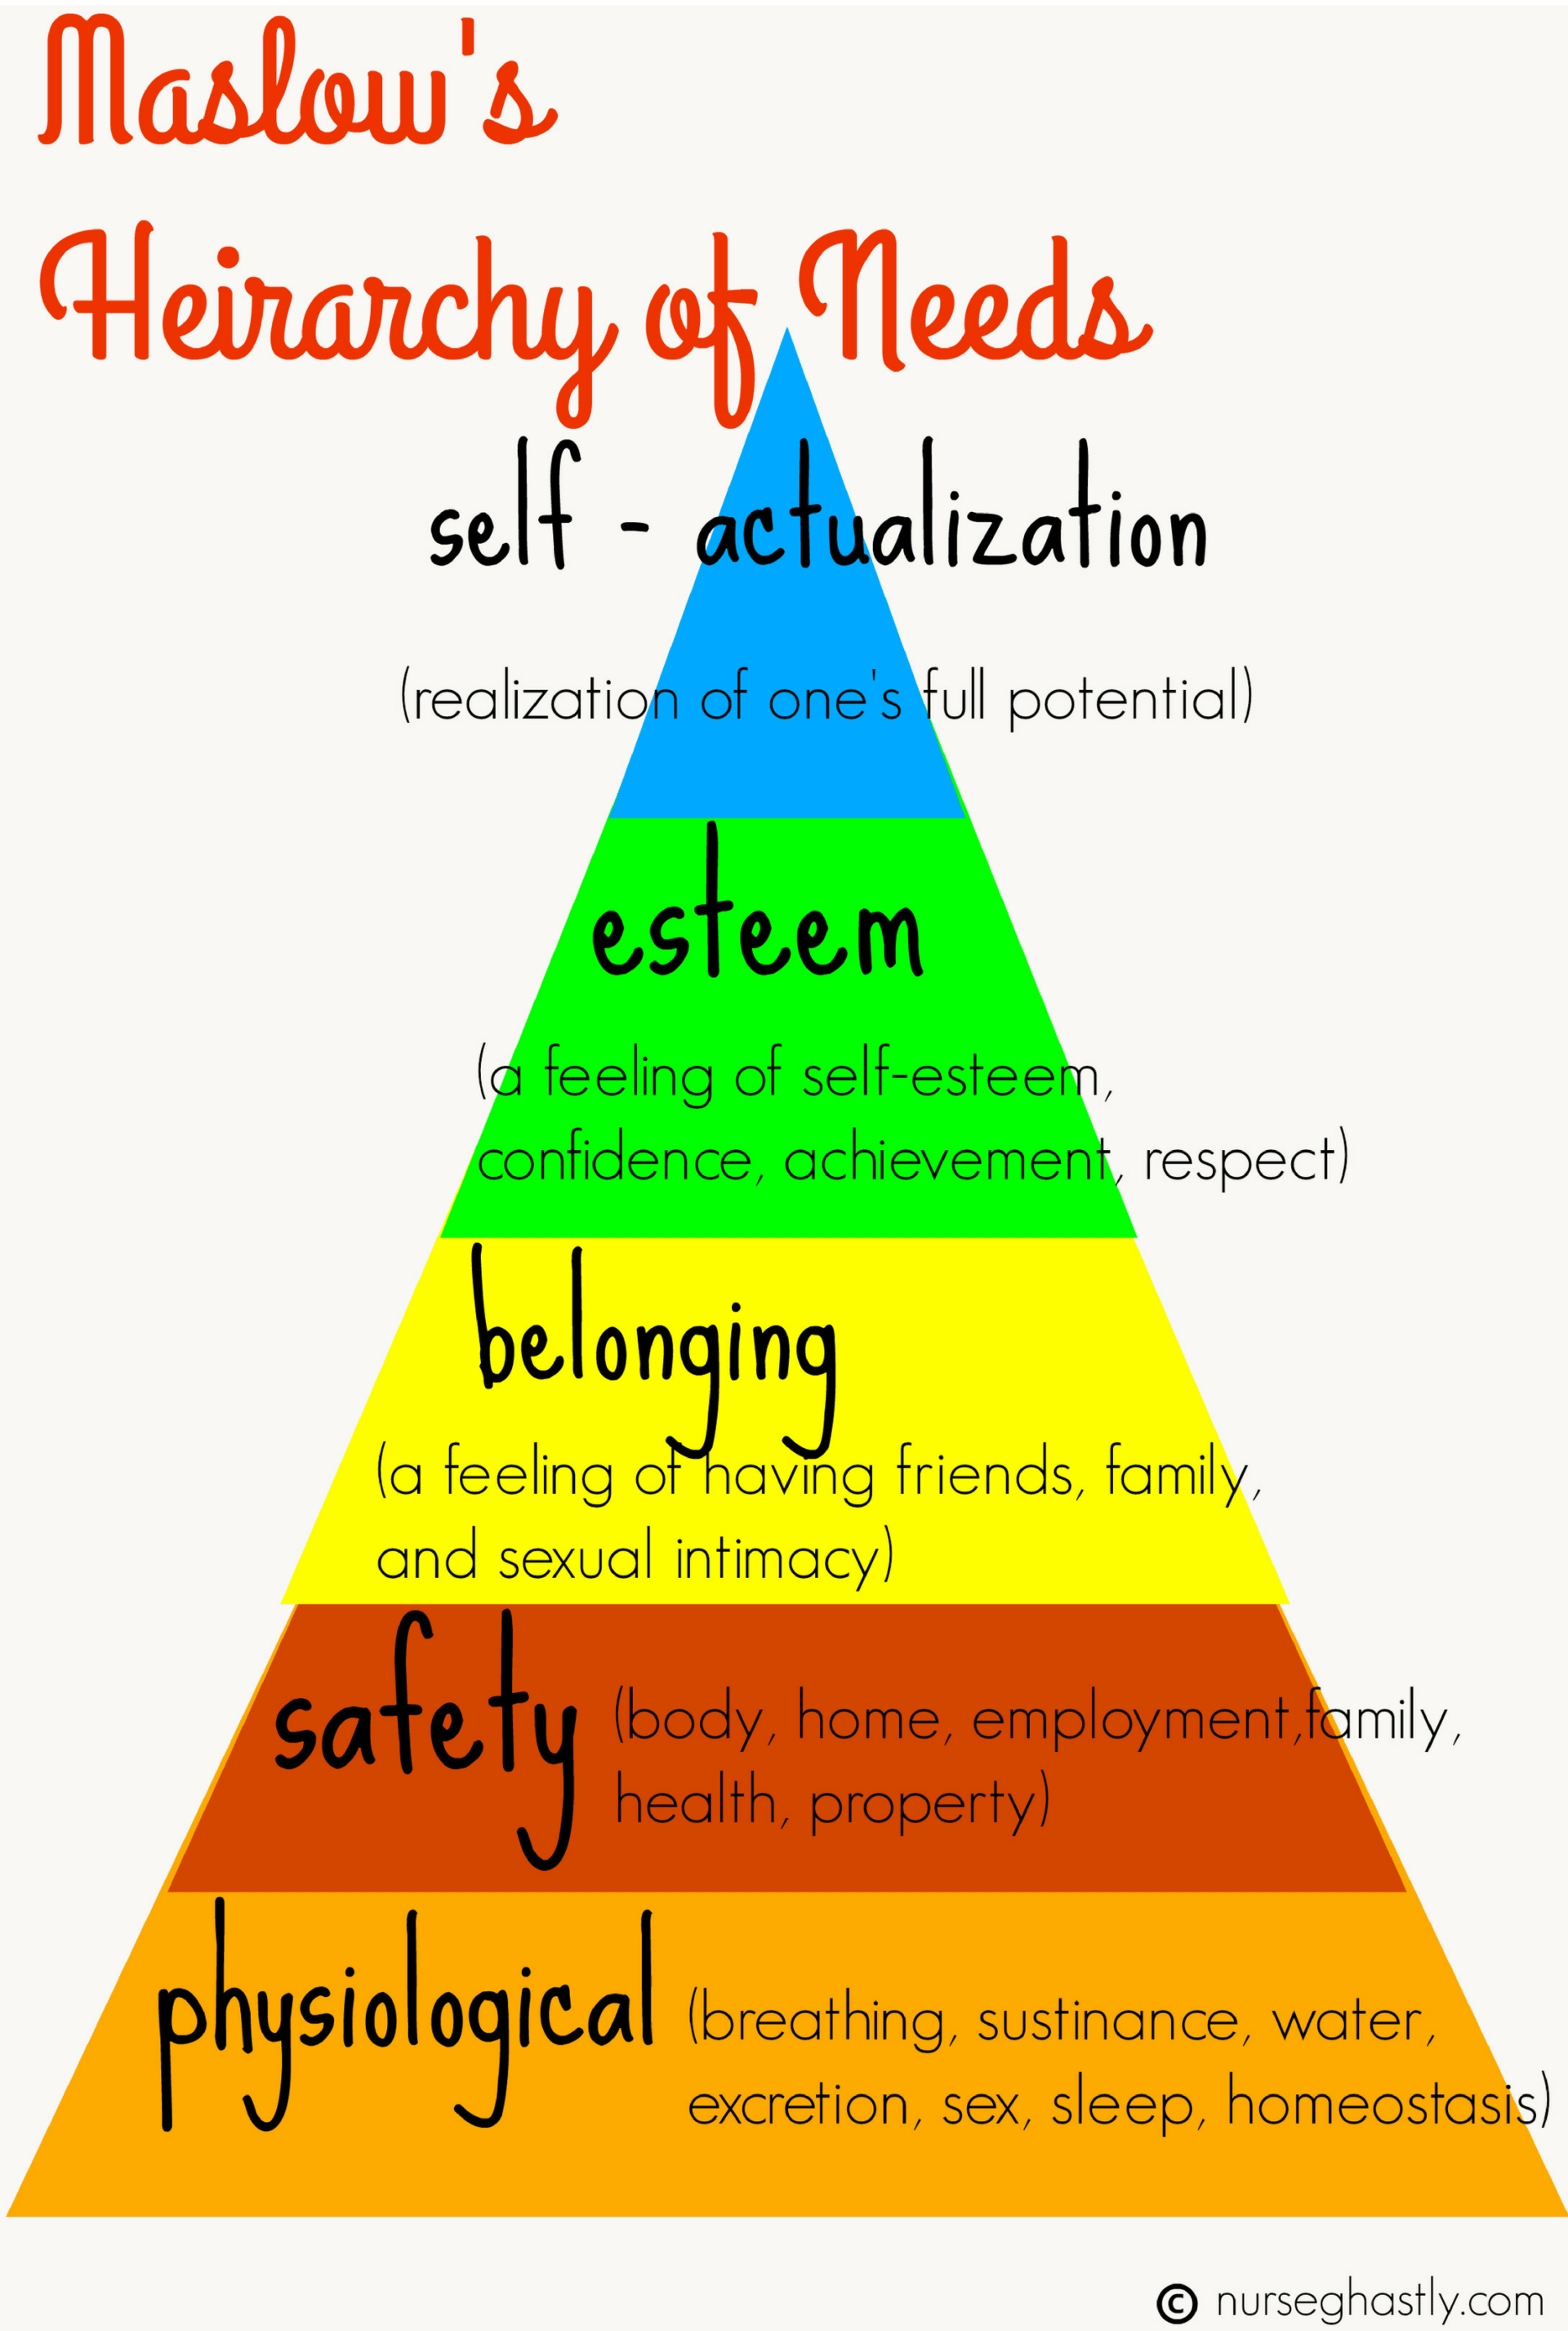 Maslow S Hierarchy Of Needs Helps Nurses To Prioritize Patients Based On Their Most Basic Needs